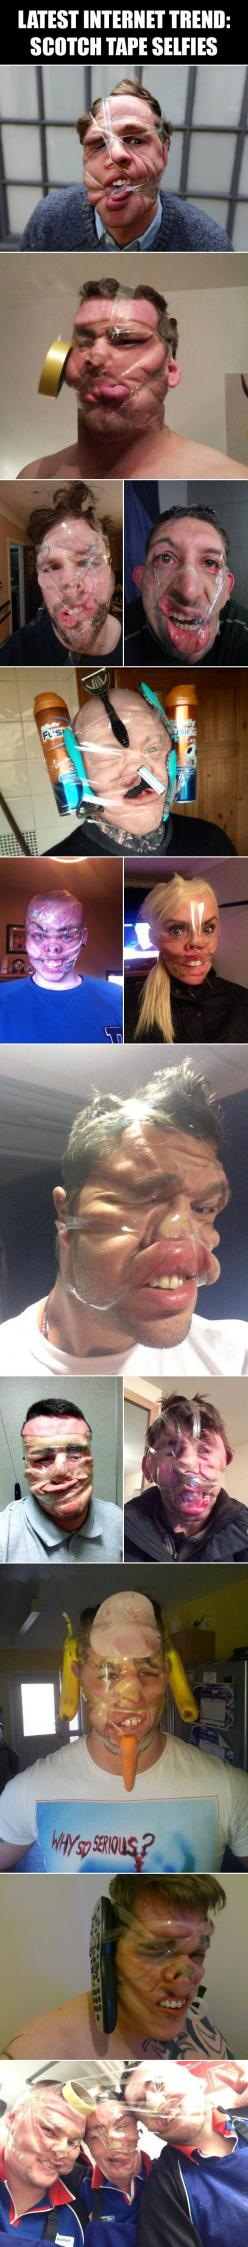 omg these are horrible!: Giggle, Tape Selfies, Funnies, Stupid Selfie, So Funny, Sleeping At Work Funny, Scotch Tape, Cant Sleep Funny